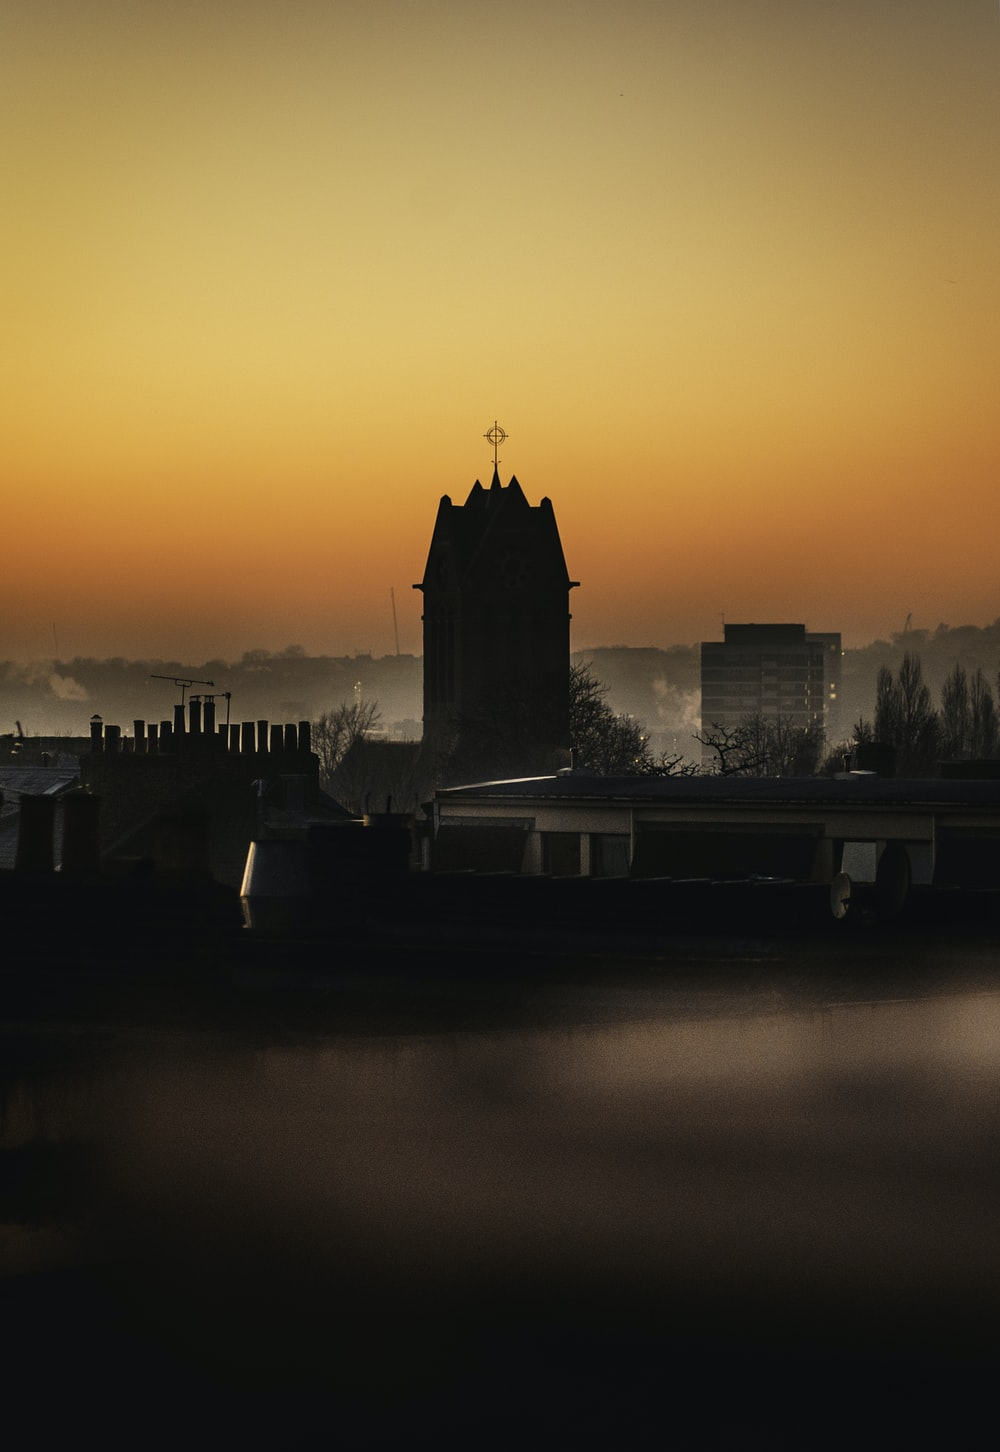 silhouette of highrise builing during golden hour